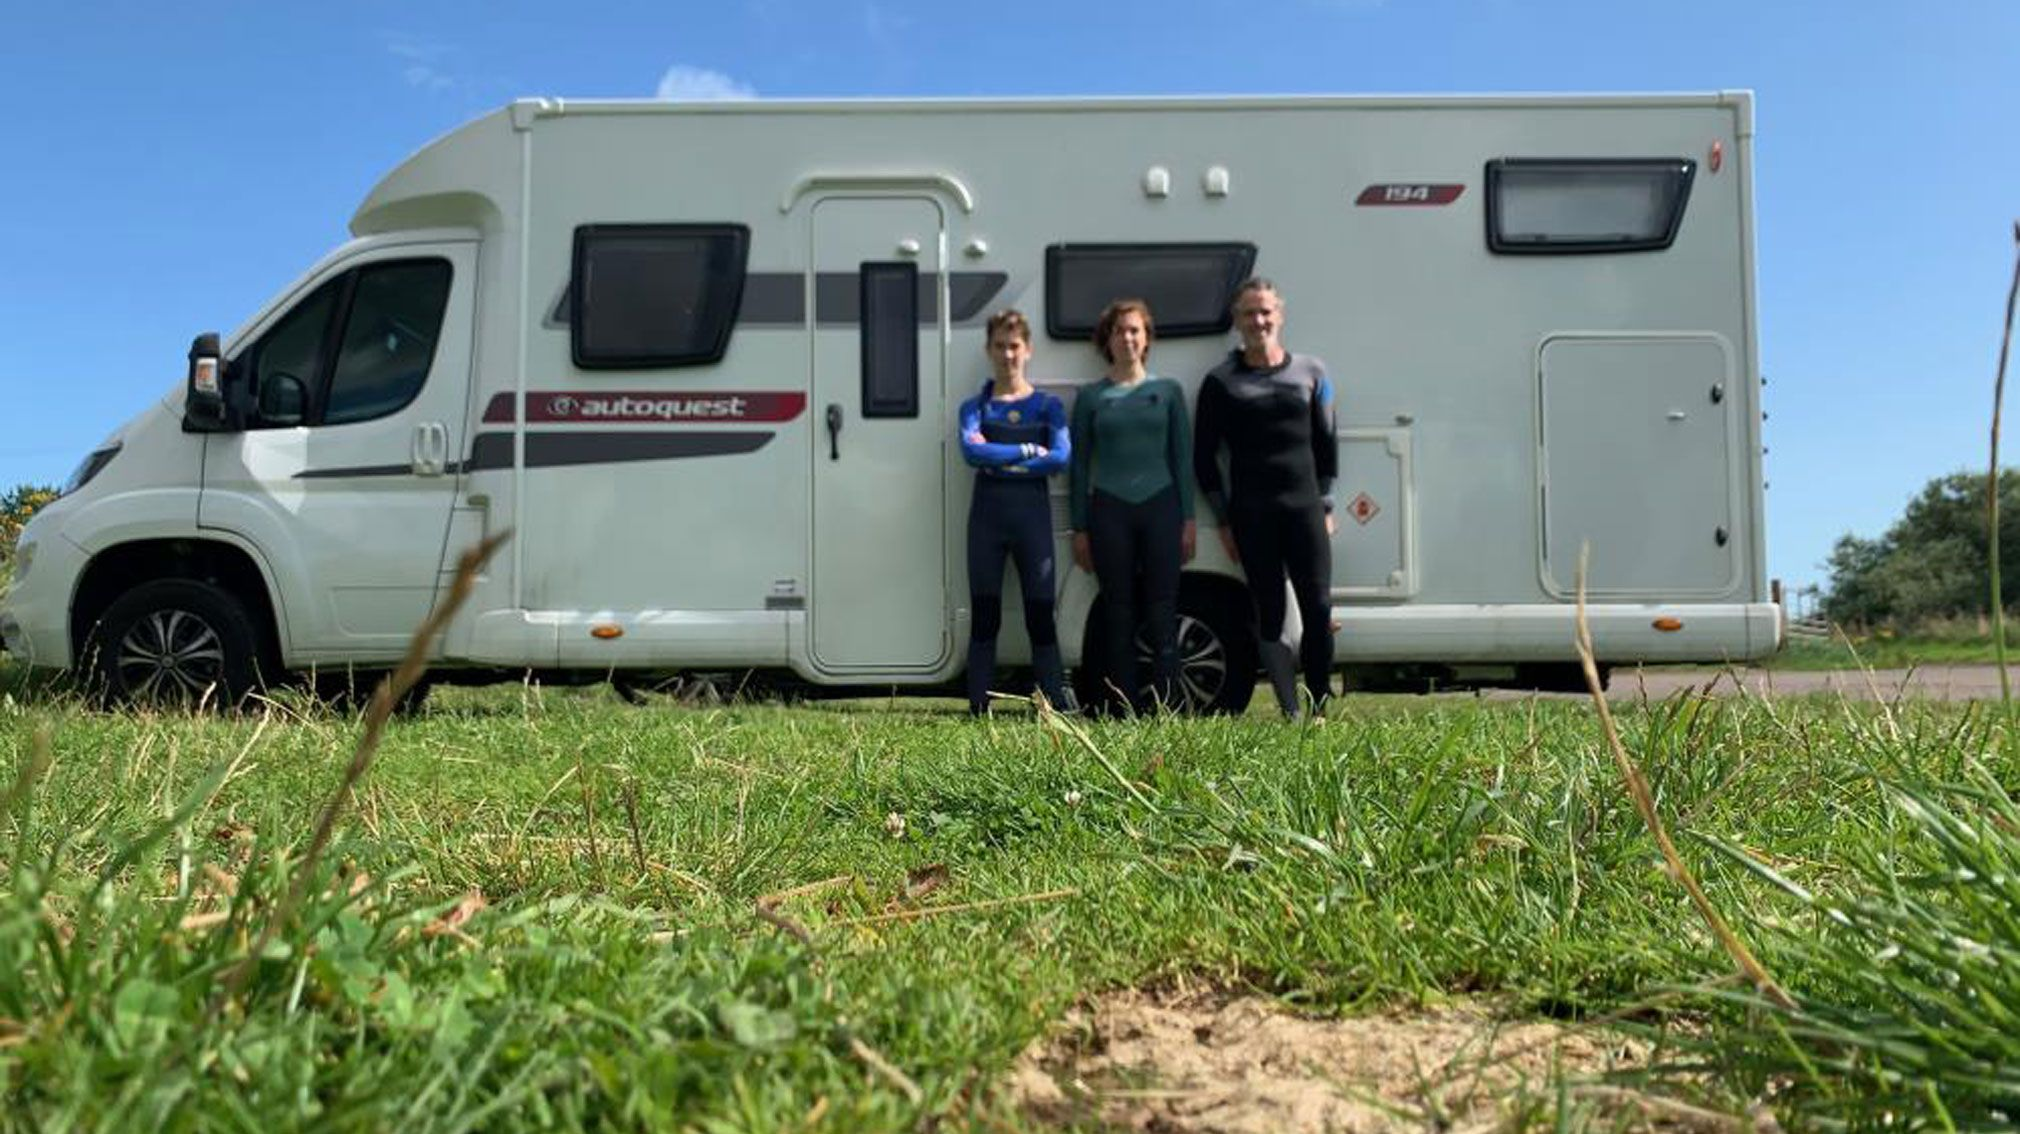 Gordon Buchanan with his children next to the Elddis Autoquest